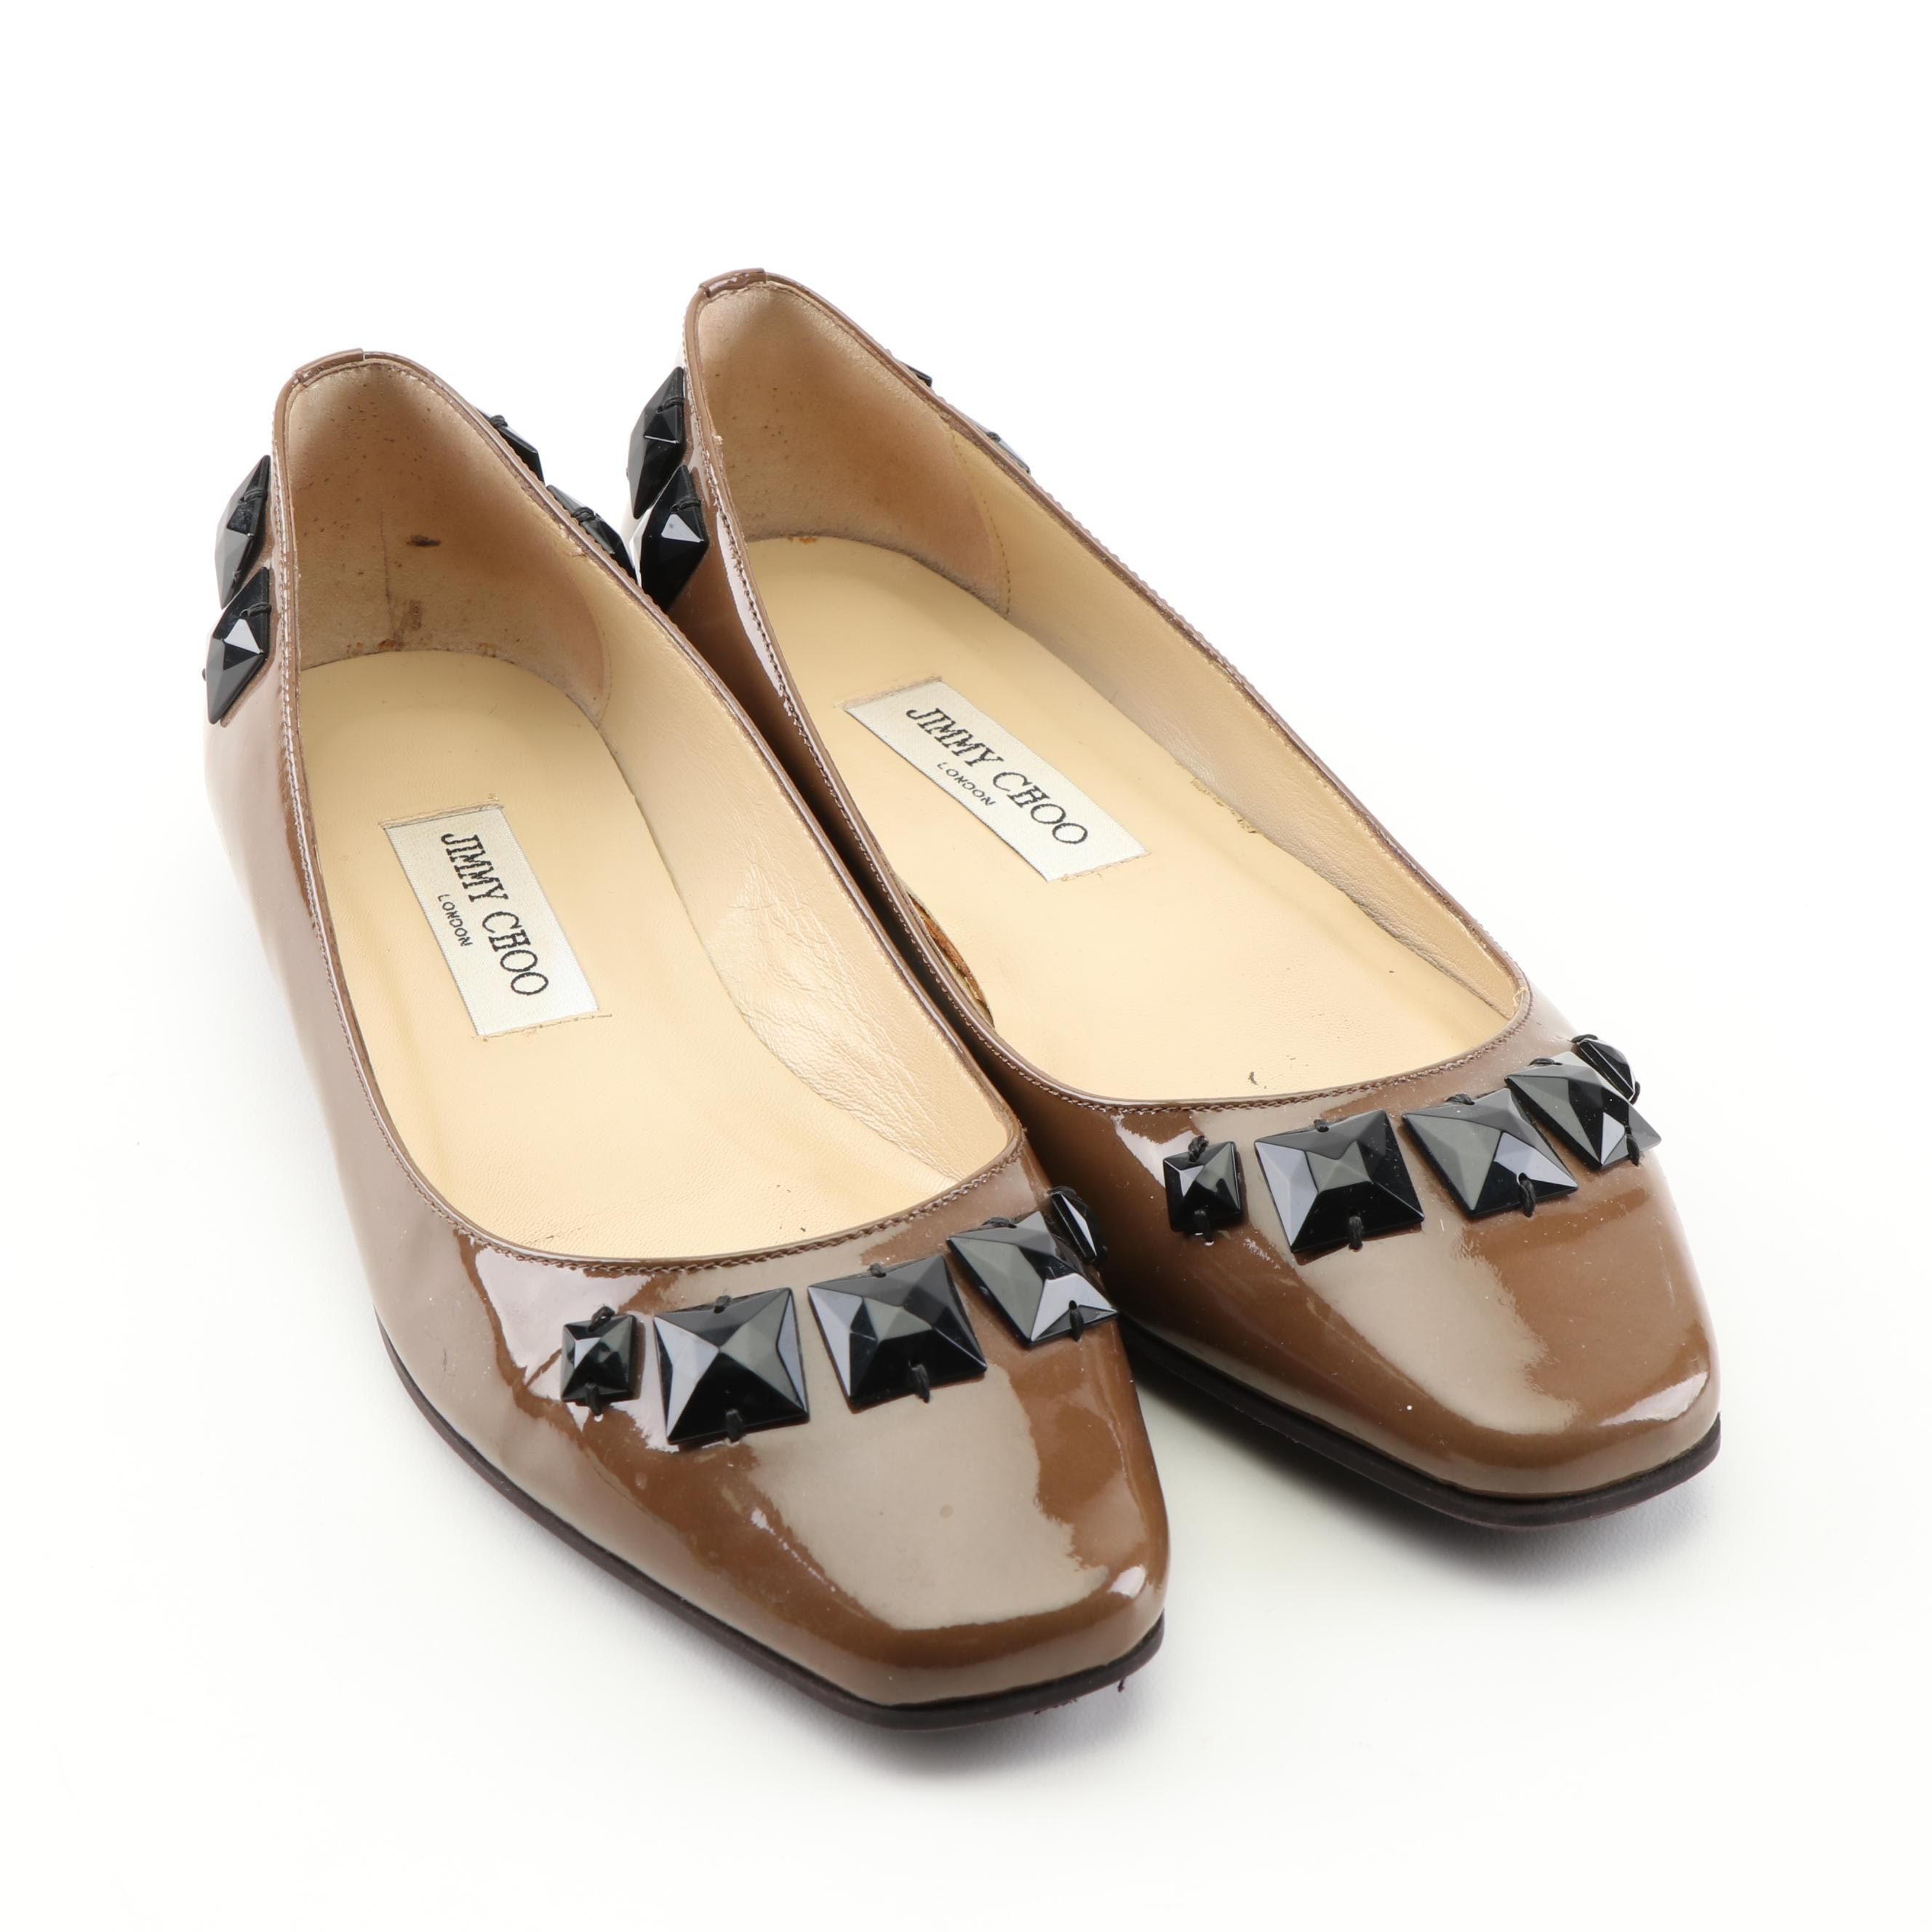 Jimmy Choo London Embellished Brown Patent Leather Flats